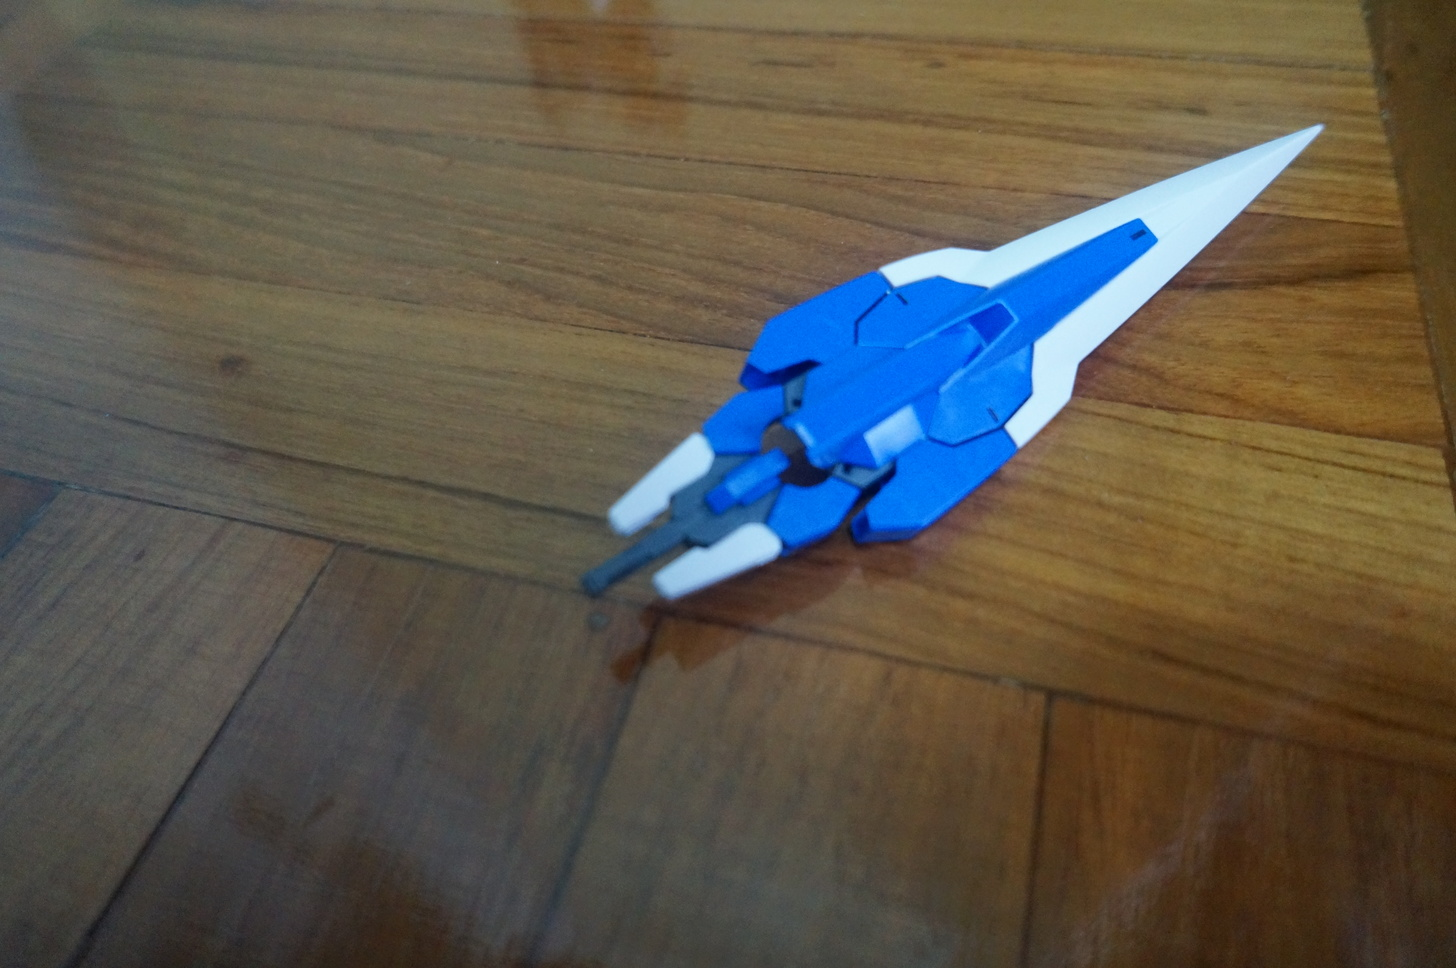 Manpigs Collection Hg00 00 Gundam Seven Sword G Review Foldupsword Origami Diagram When You Want To Use It Simply Just Take Off The Shoulder Push In Handle And Later Flip Up Hilt Parts